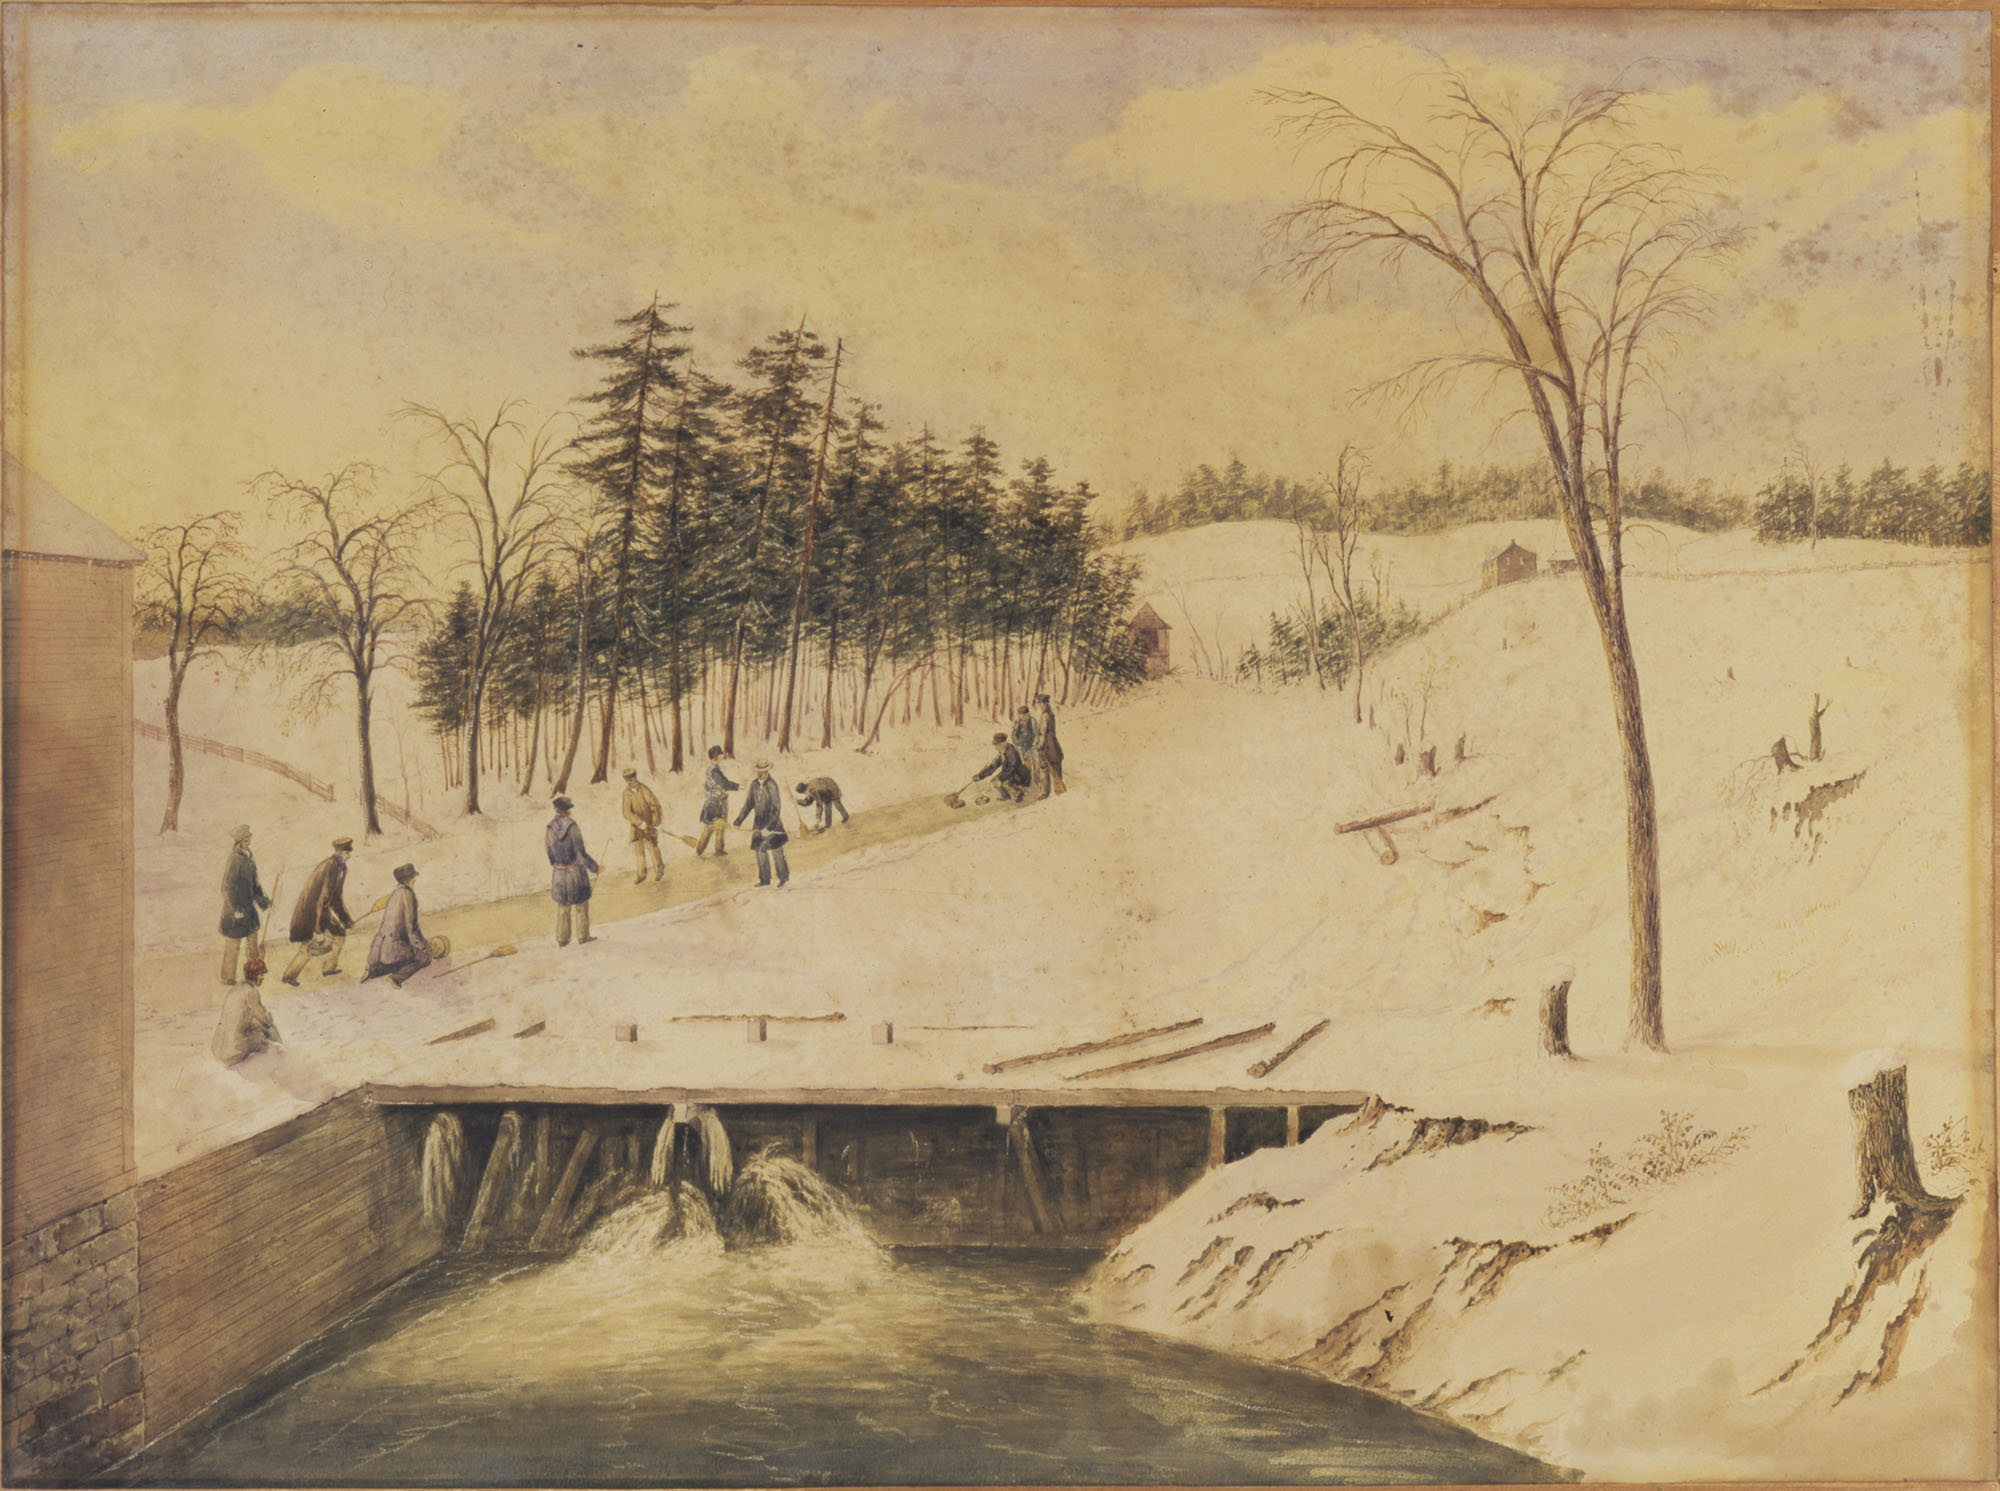 Aquarelle intitulée CURLING ON THE DON RIVER, TORONTO, 1836